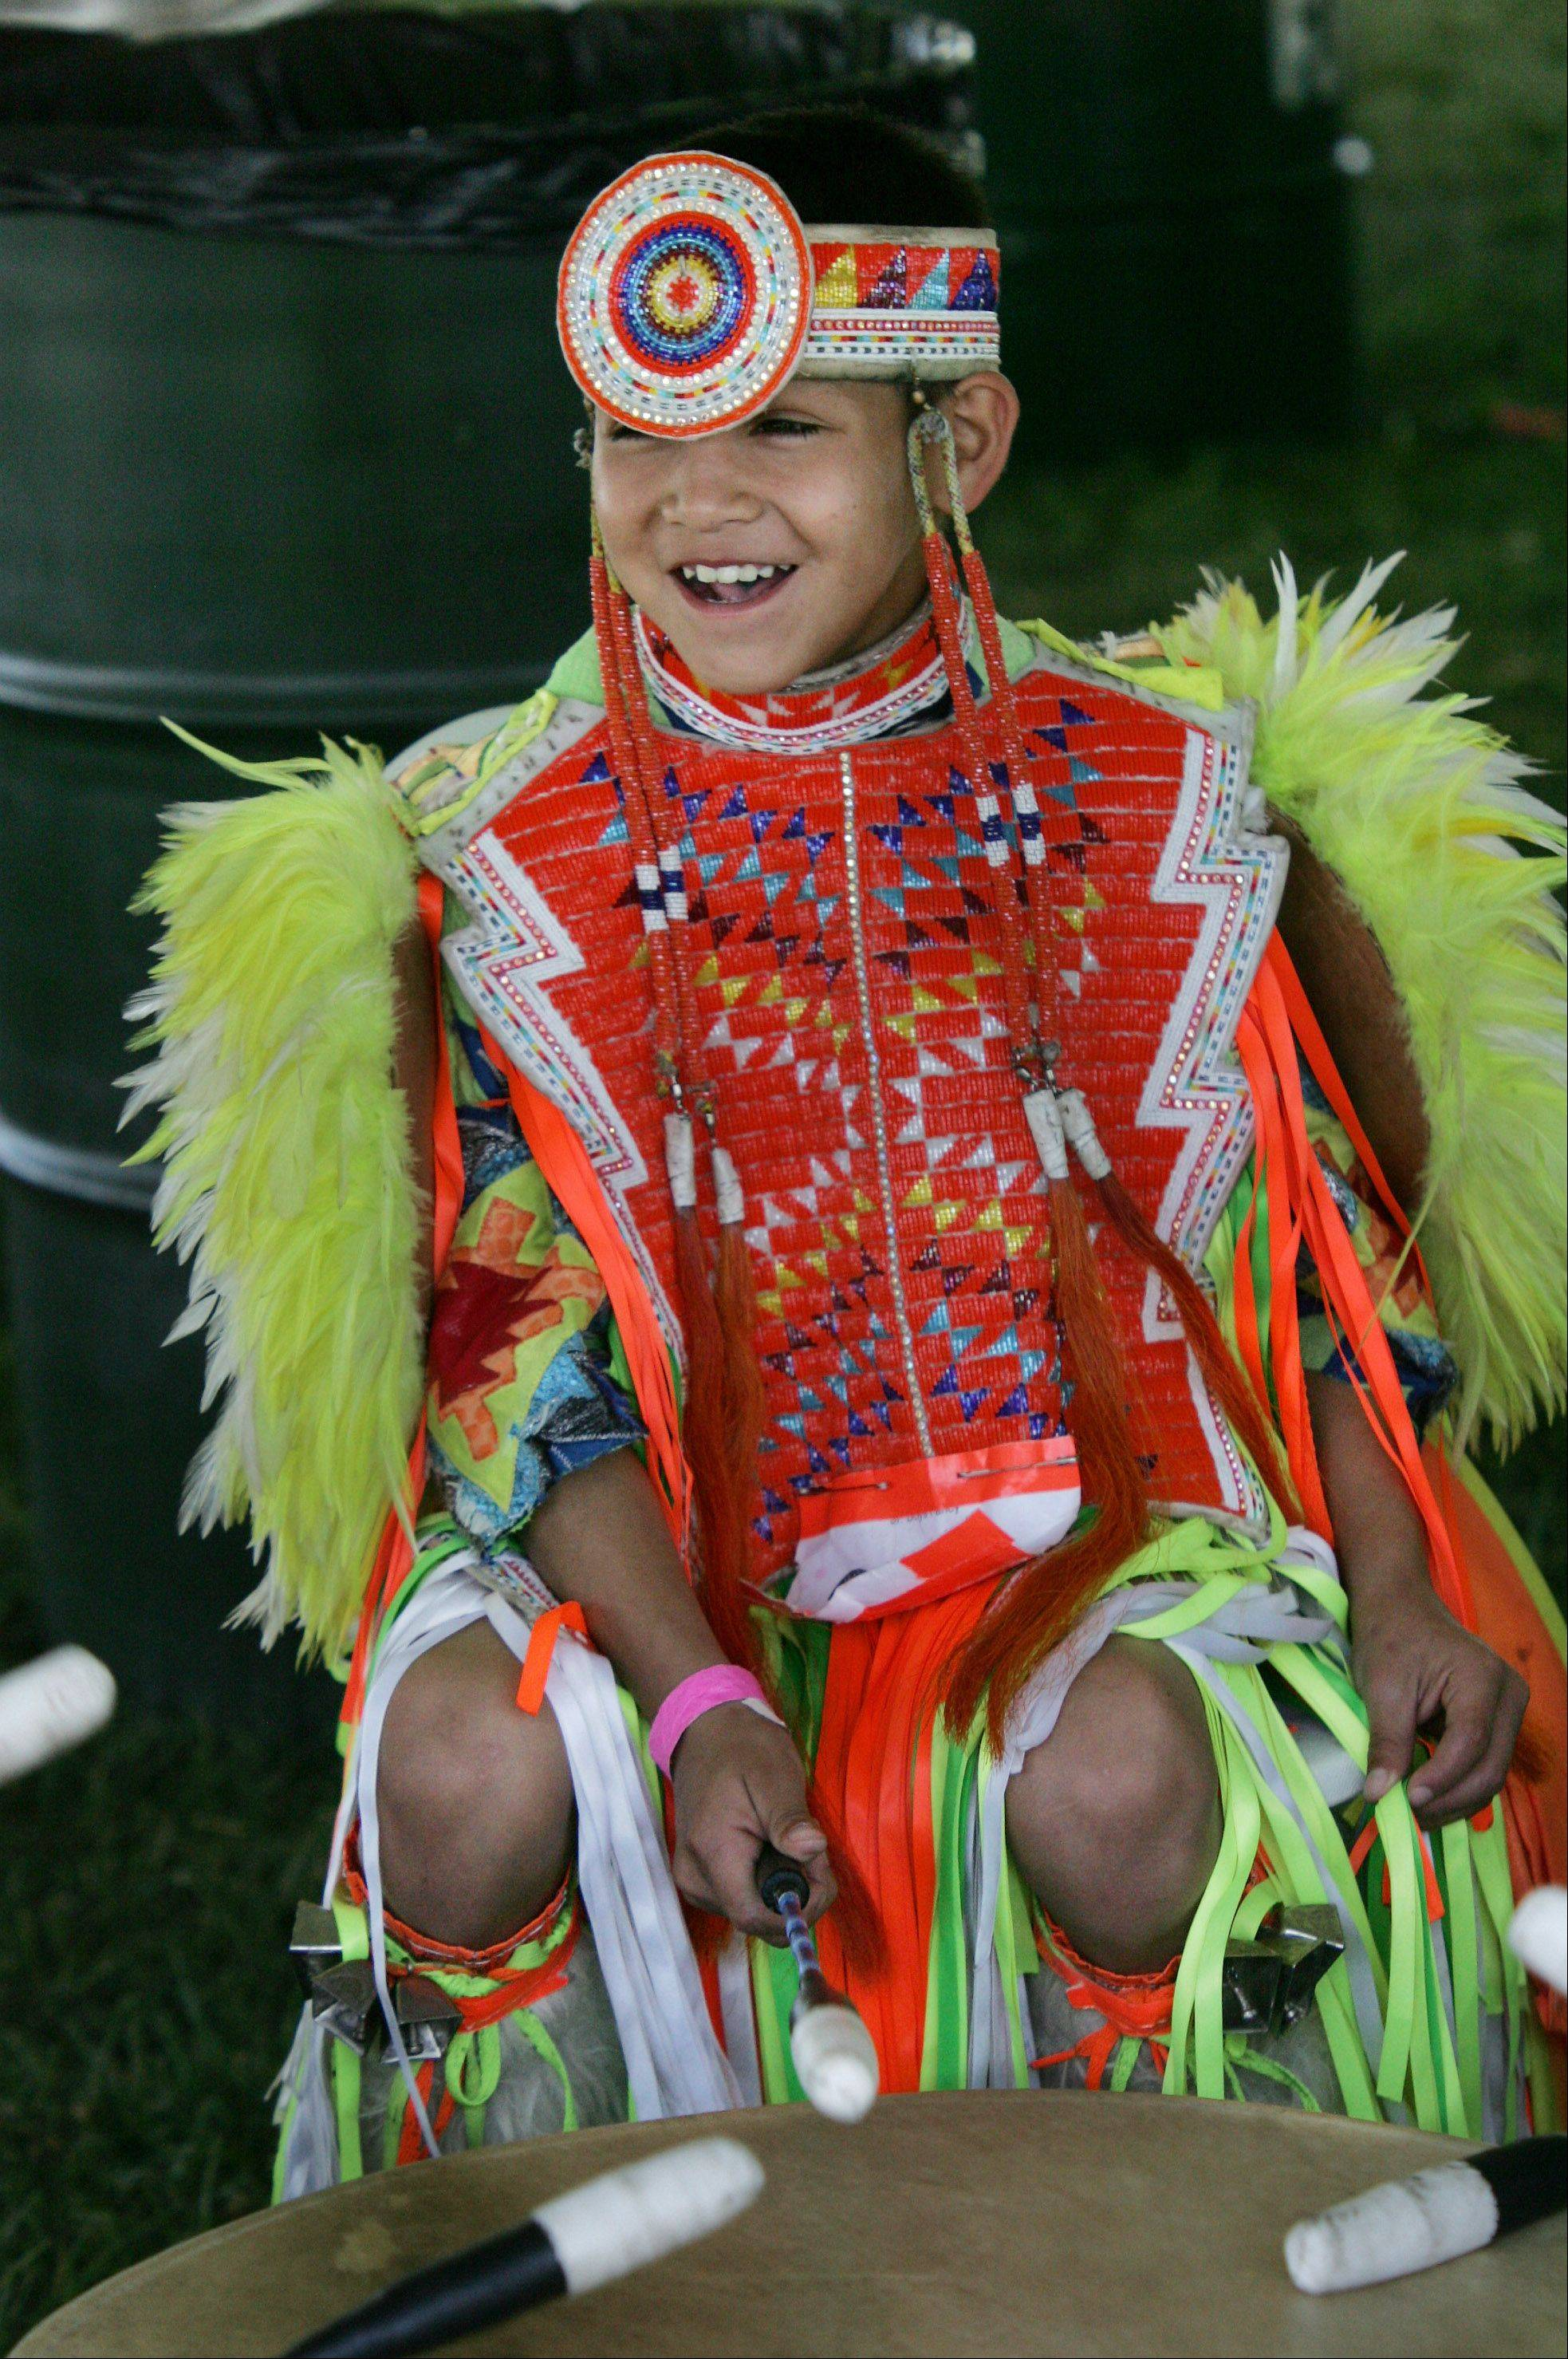 Buster Cleveland, 8, from the Ho Chunk Nation in Wisconsin, plays the drum during the 59th Annual American Indian Center Pow Wow Sunday at Busse Woods Forest Preserve in Elk Grove Village. The event featured Native American dance competition, Native skateboarding demo, singers, artists, food vendors, storytelling, and archery.